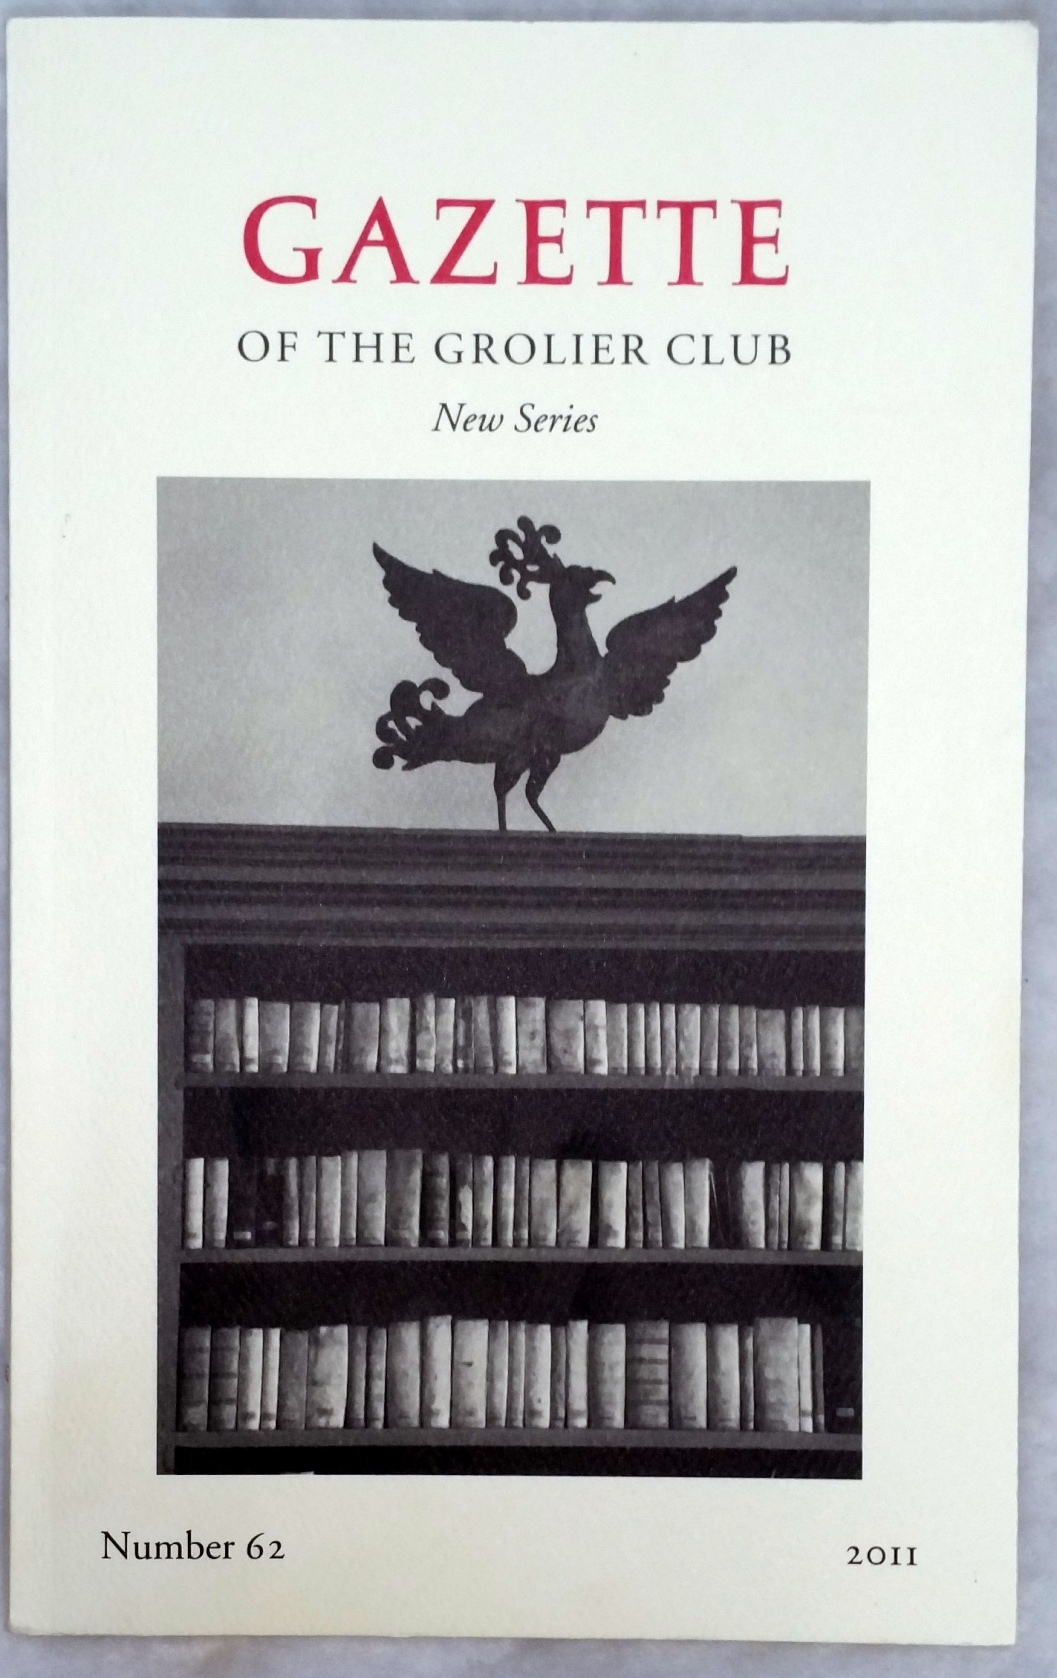 Image for Gazette of the Grolier Club, New Series, Number 62, 2011